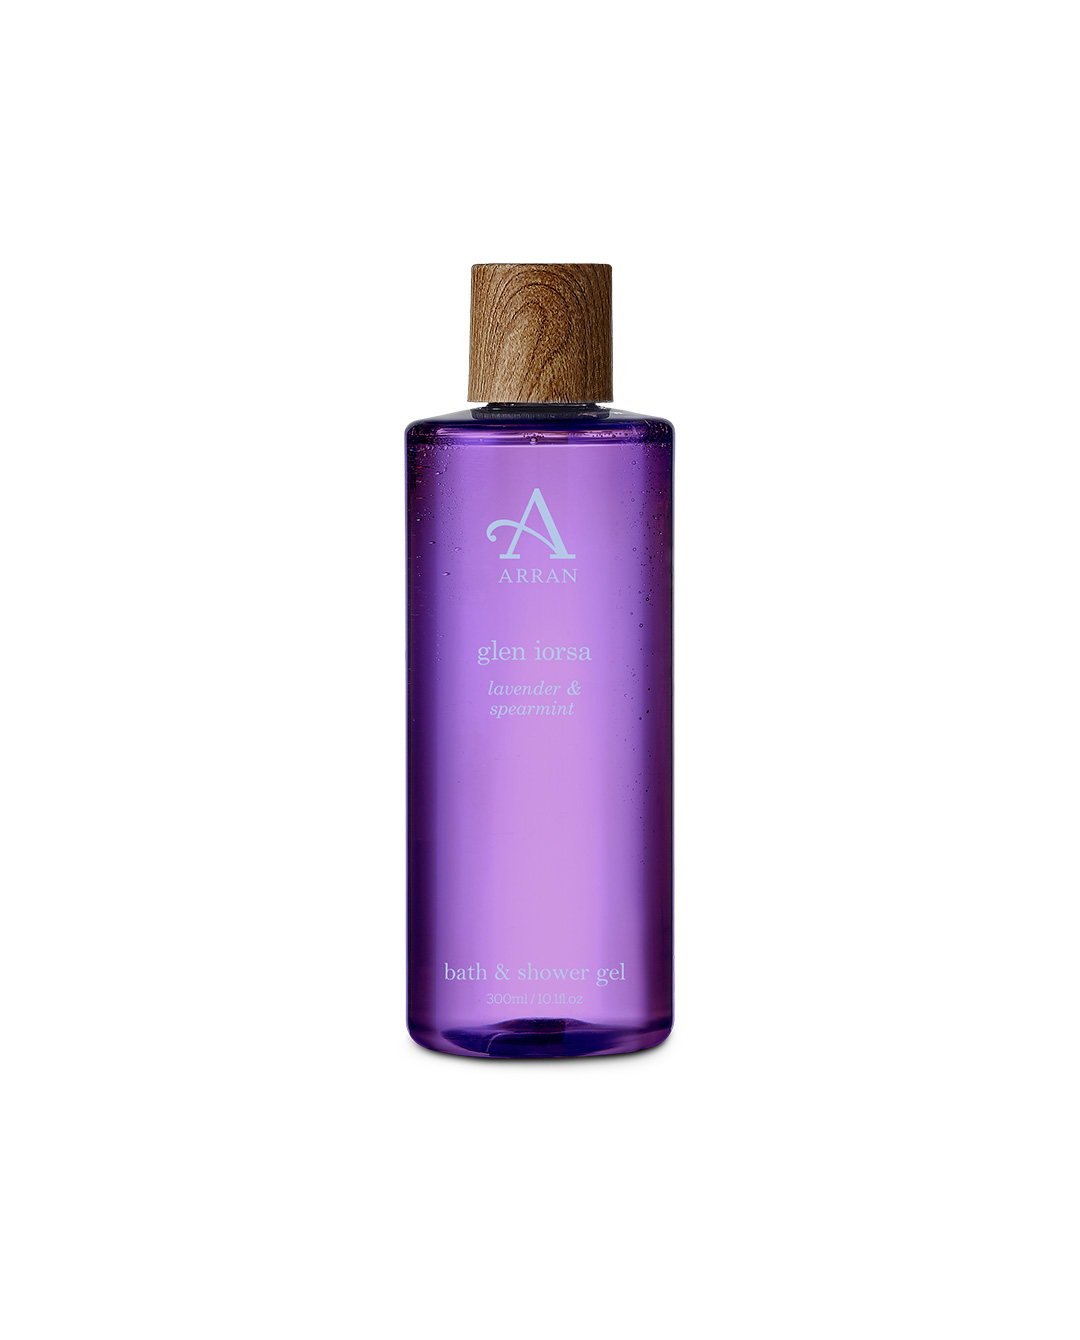 Arran Glen Iorsa Bath & Shower Gel 10.5oz (300ml)